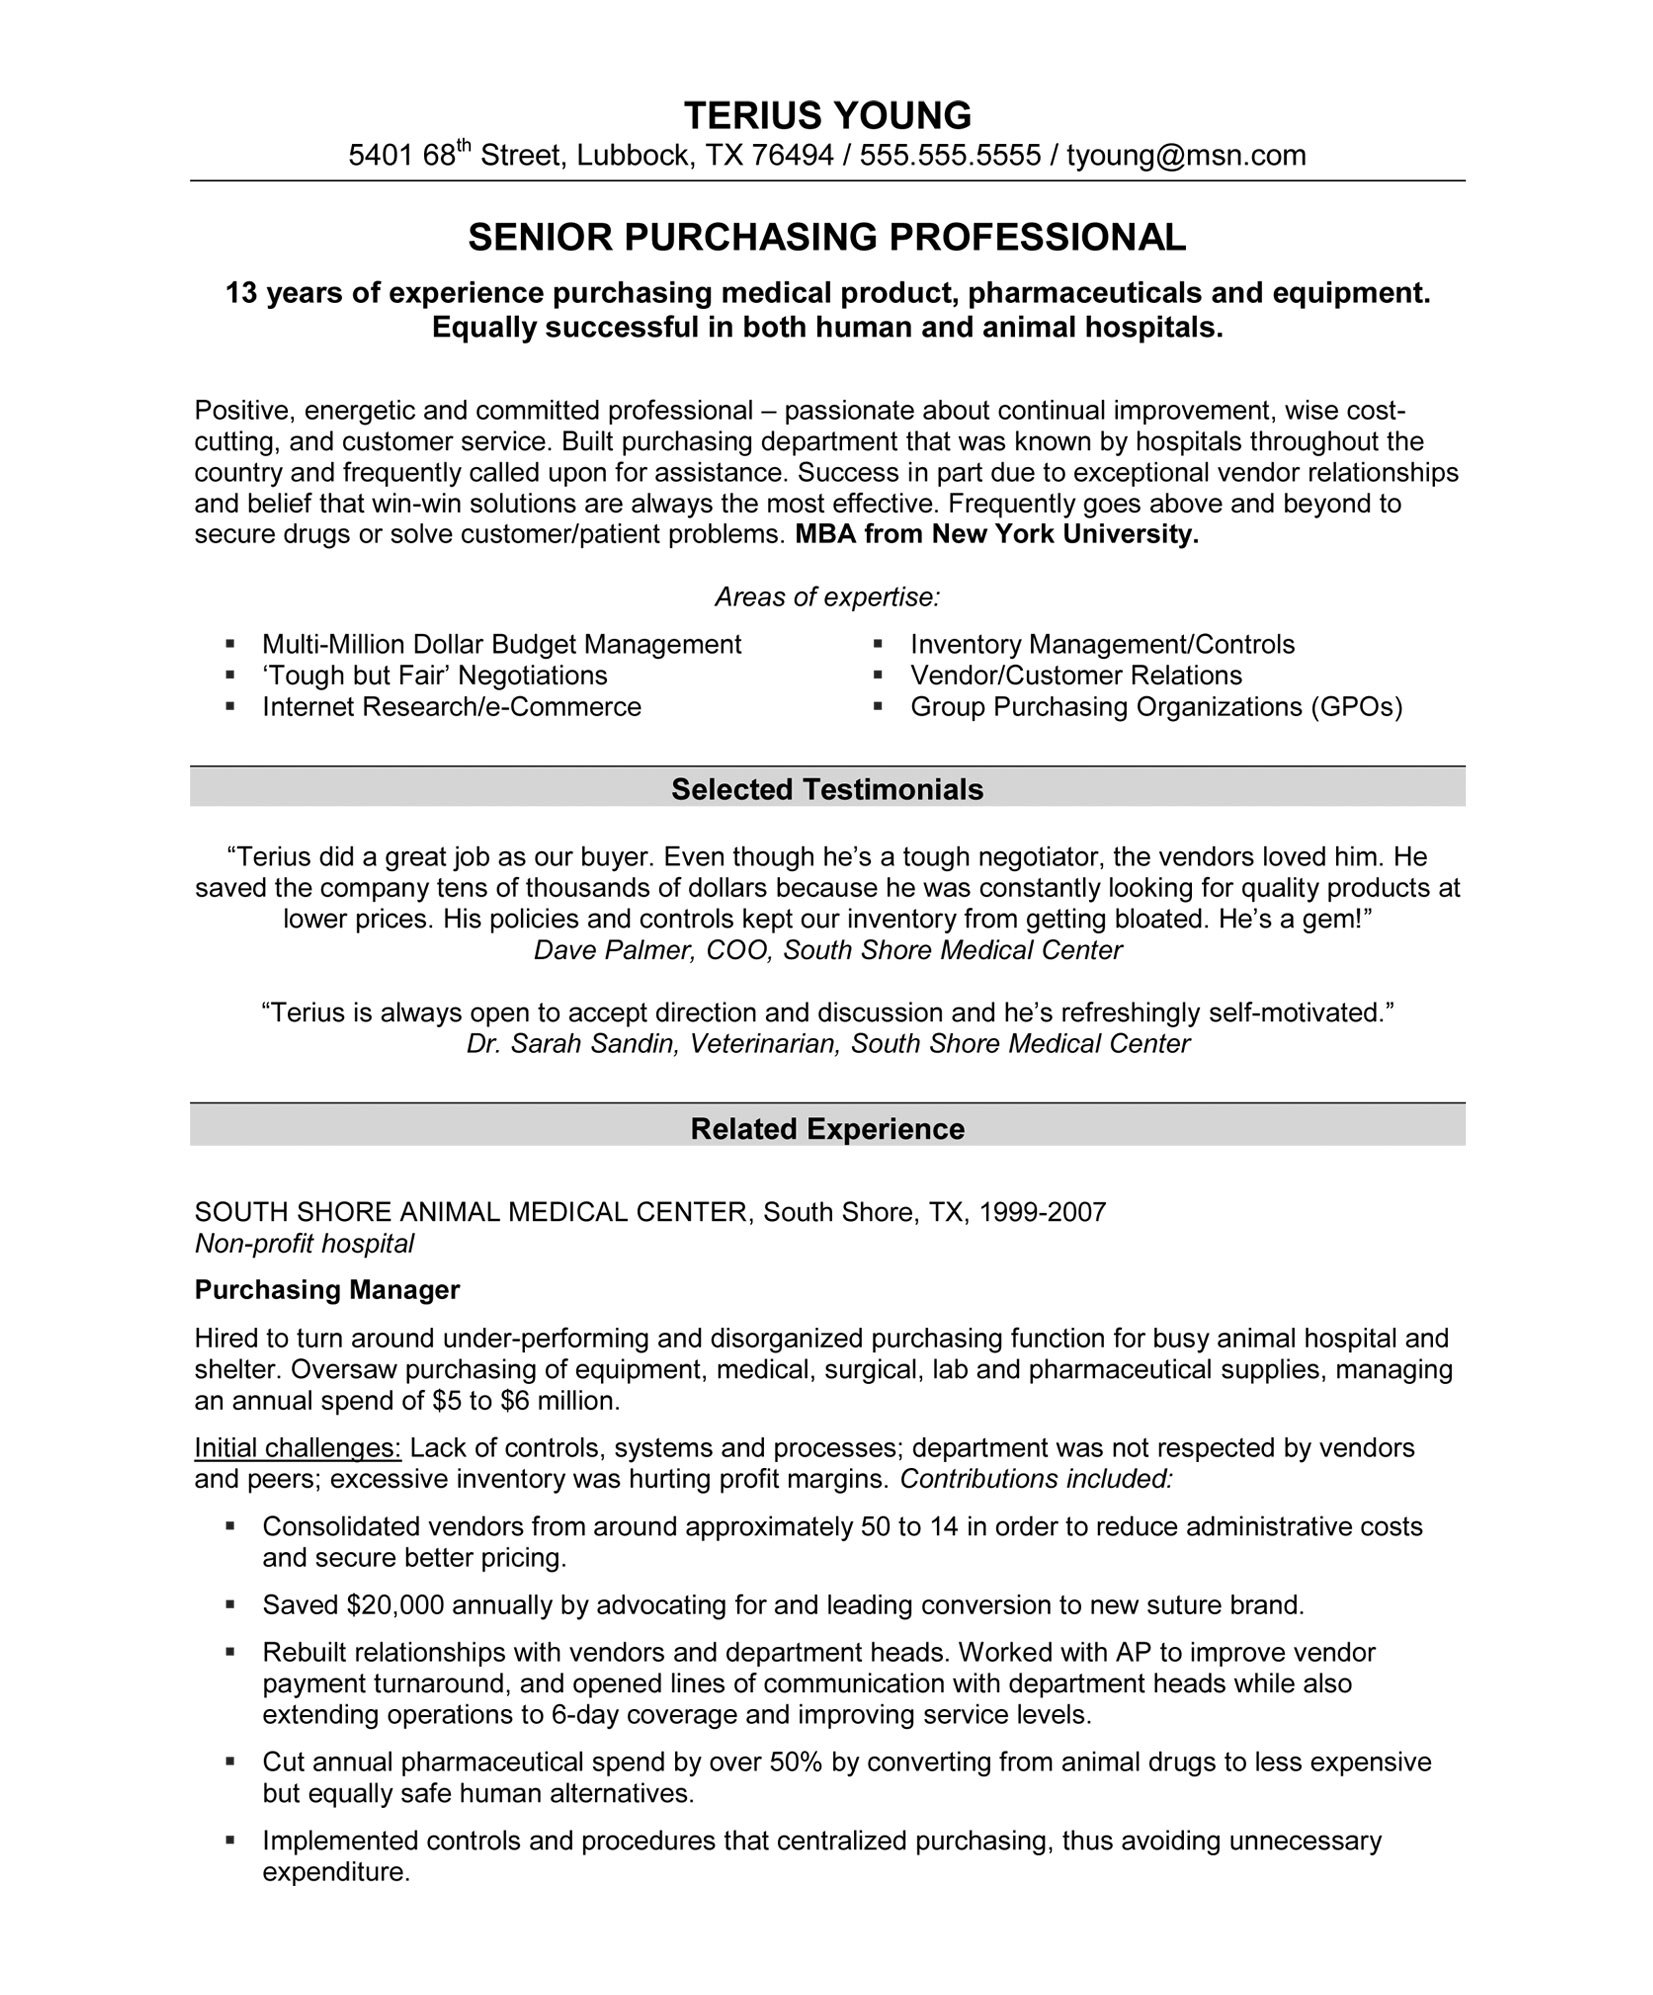 nonprofit resume help resume for non profit non professional resume samples profile on resume for non profit non professional resume samples profile on